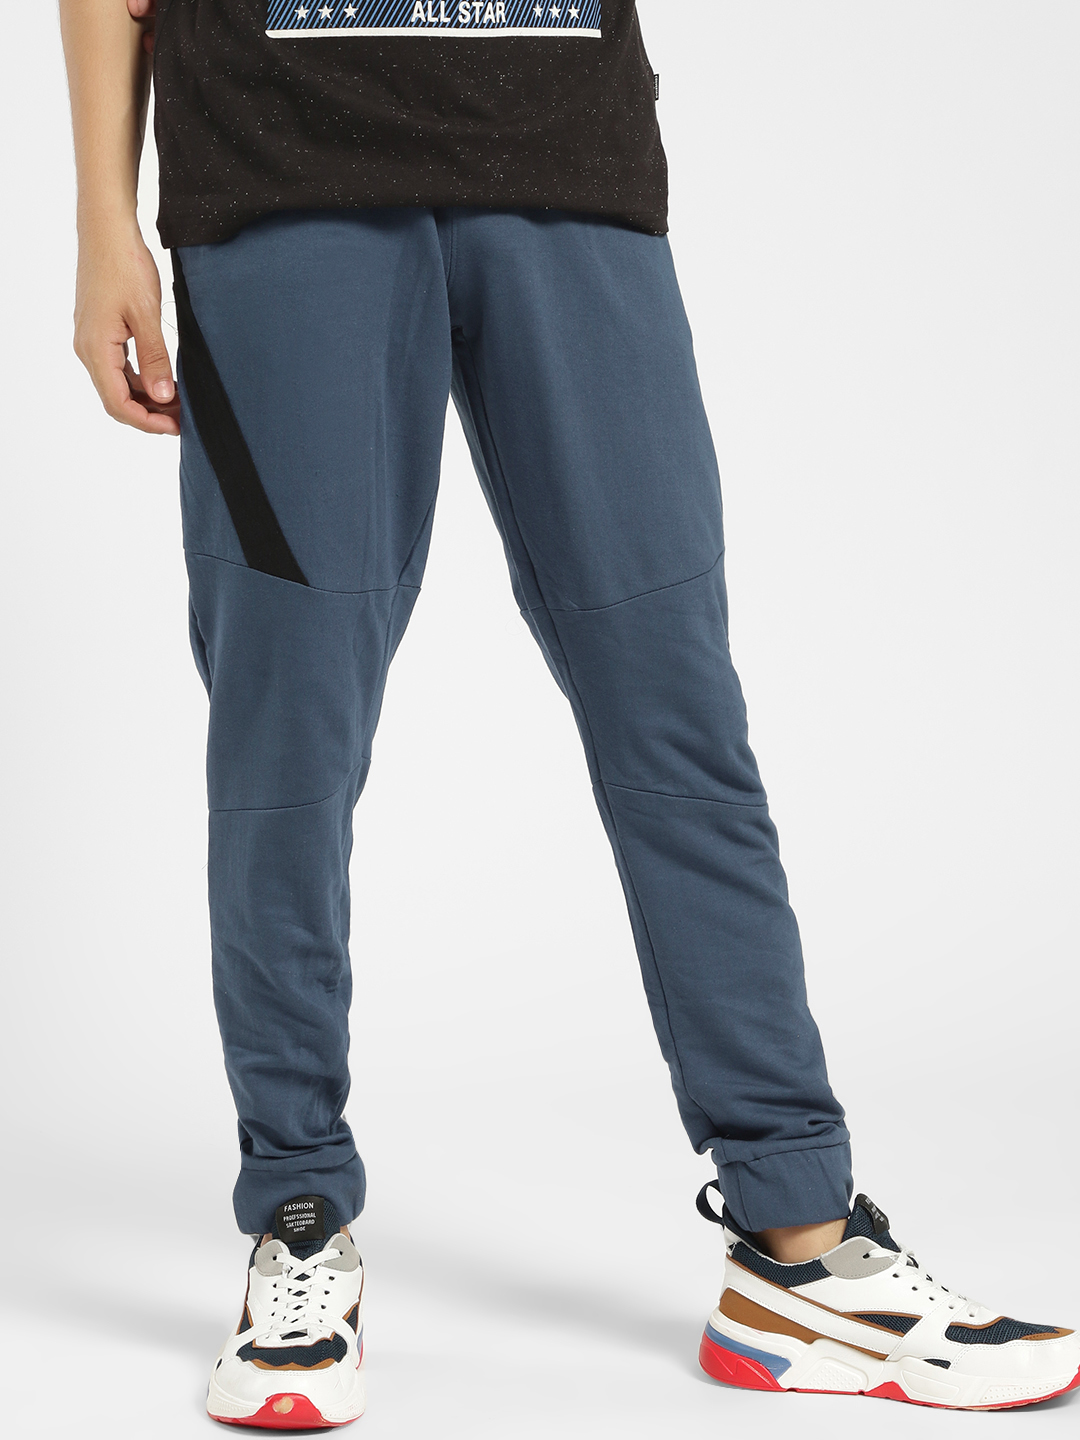 X.O.Y.O Blue Contrast Side Zipper Tape Panelled Joggers 1